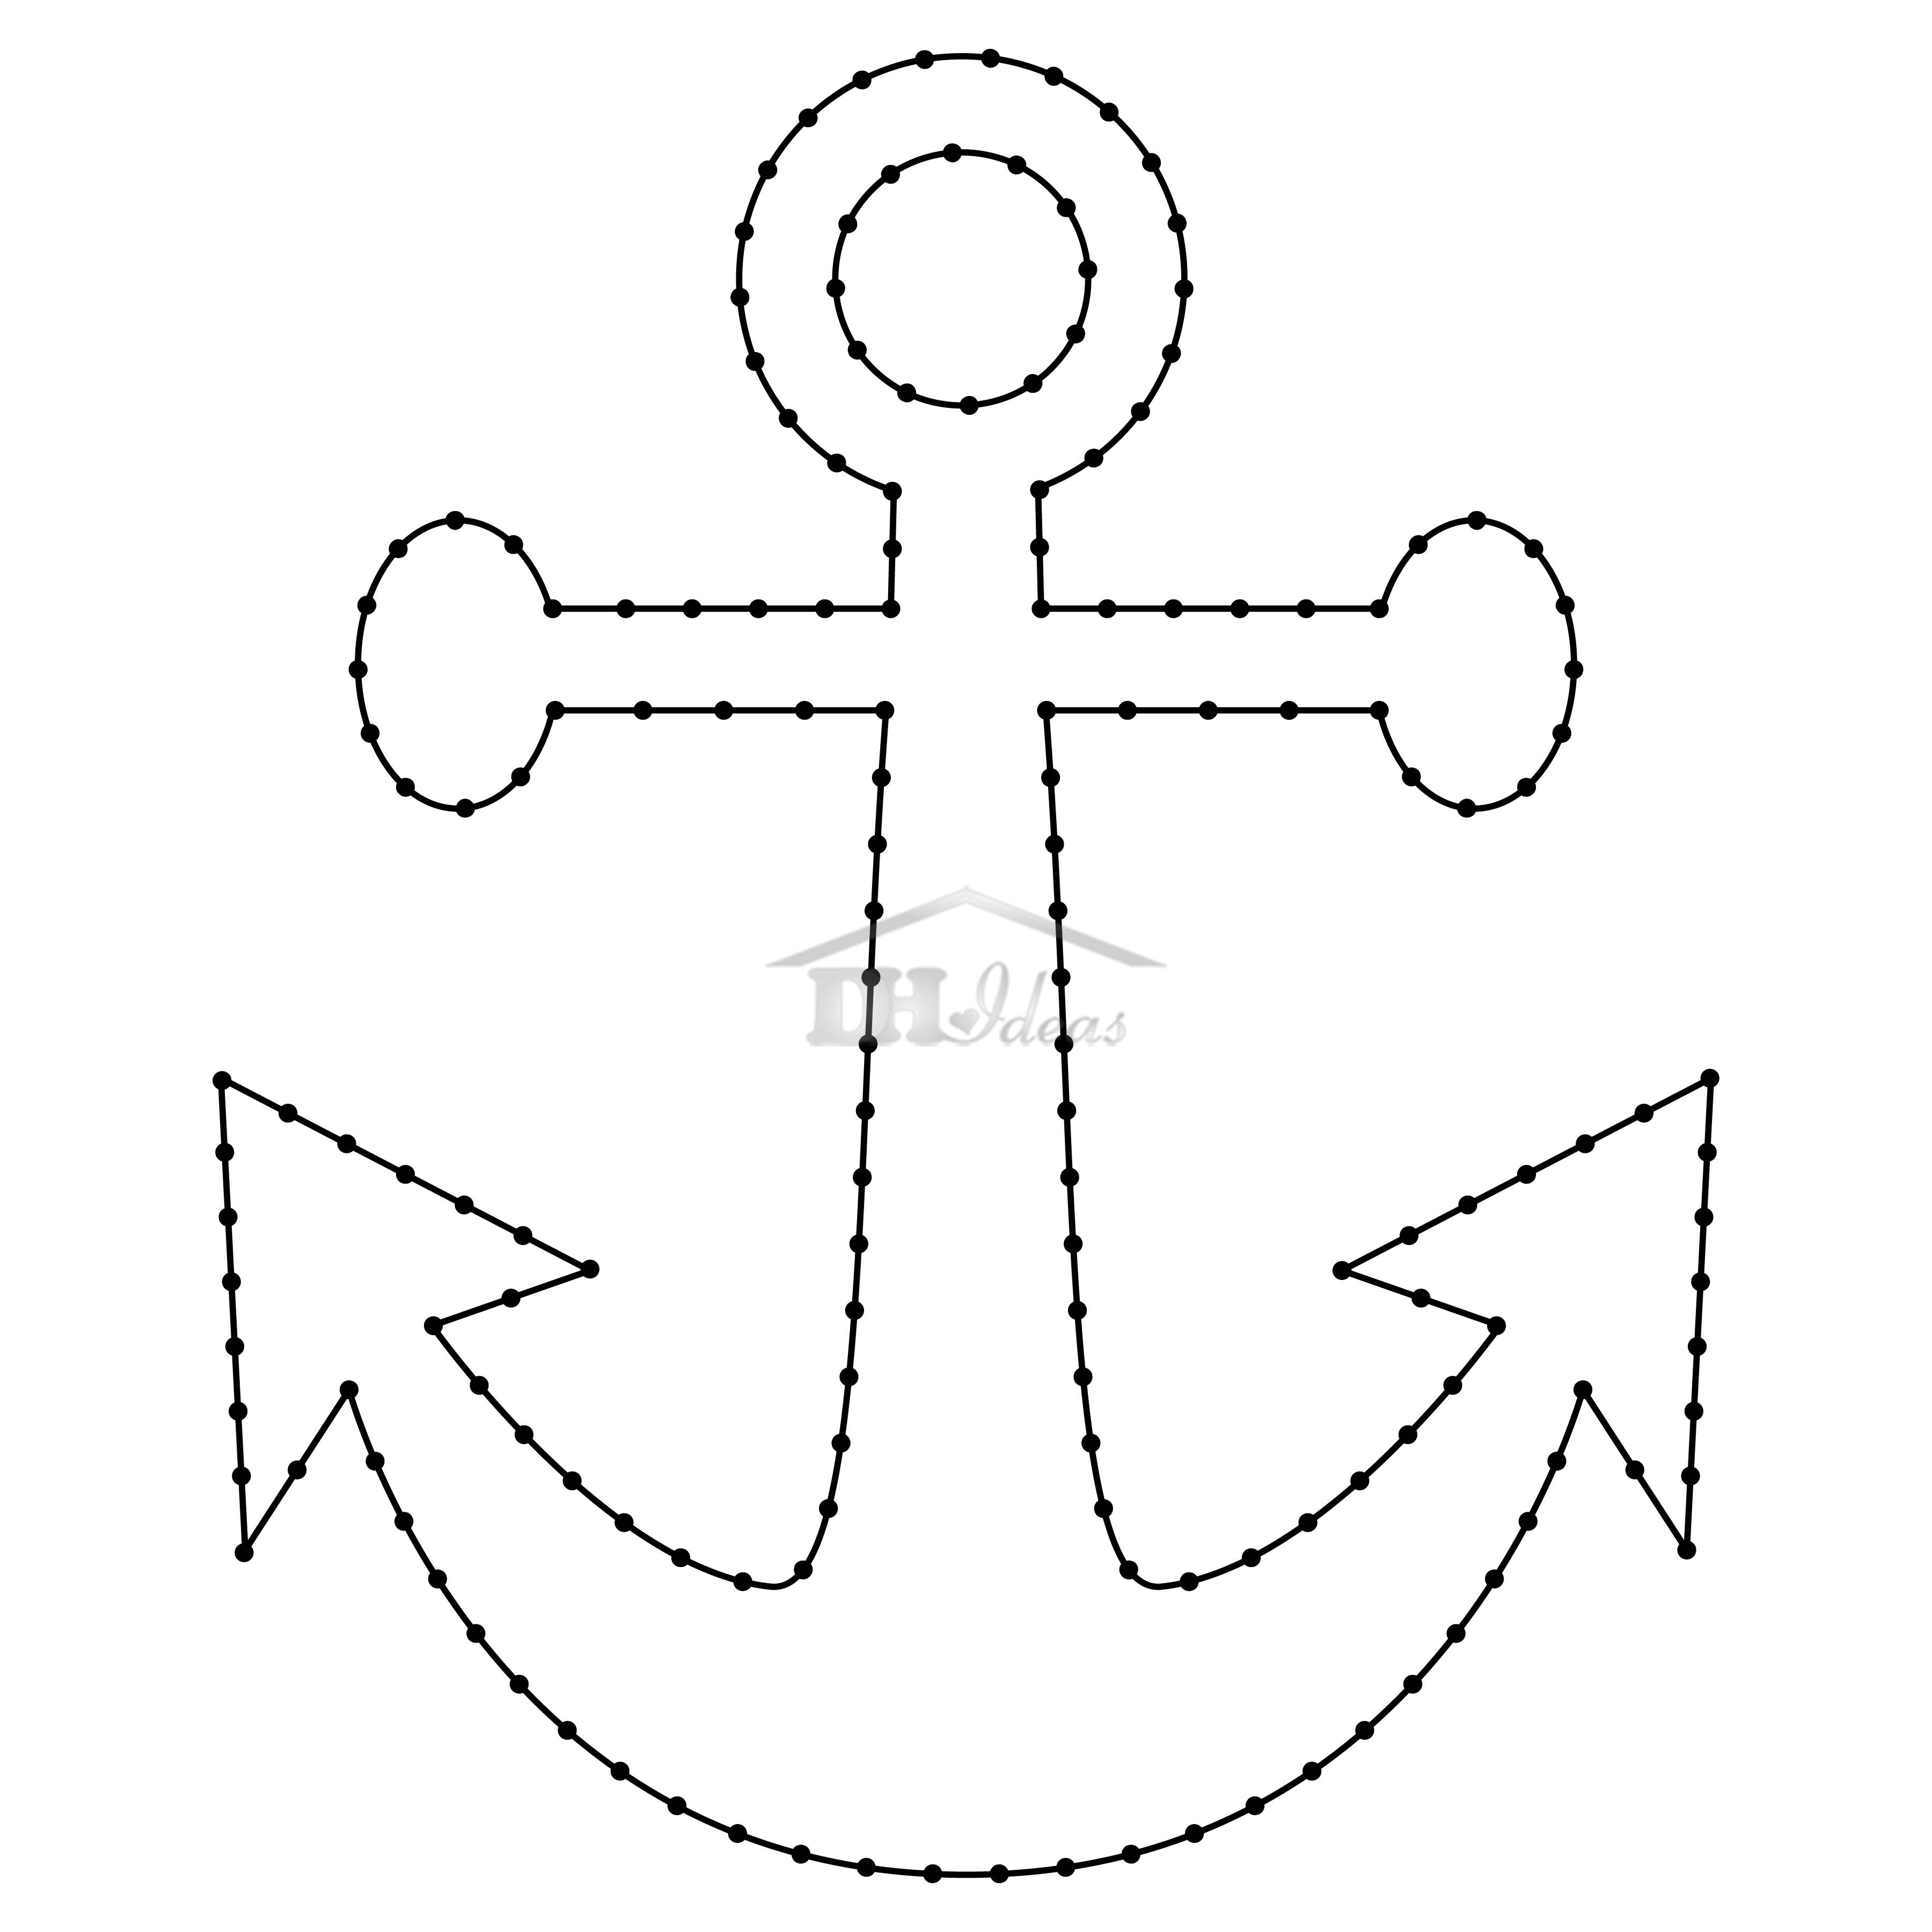 30 Free Printable String Art Patterns (Direct Download) - Free Printable Anchor Template